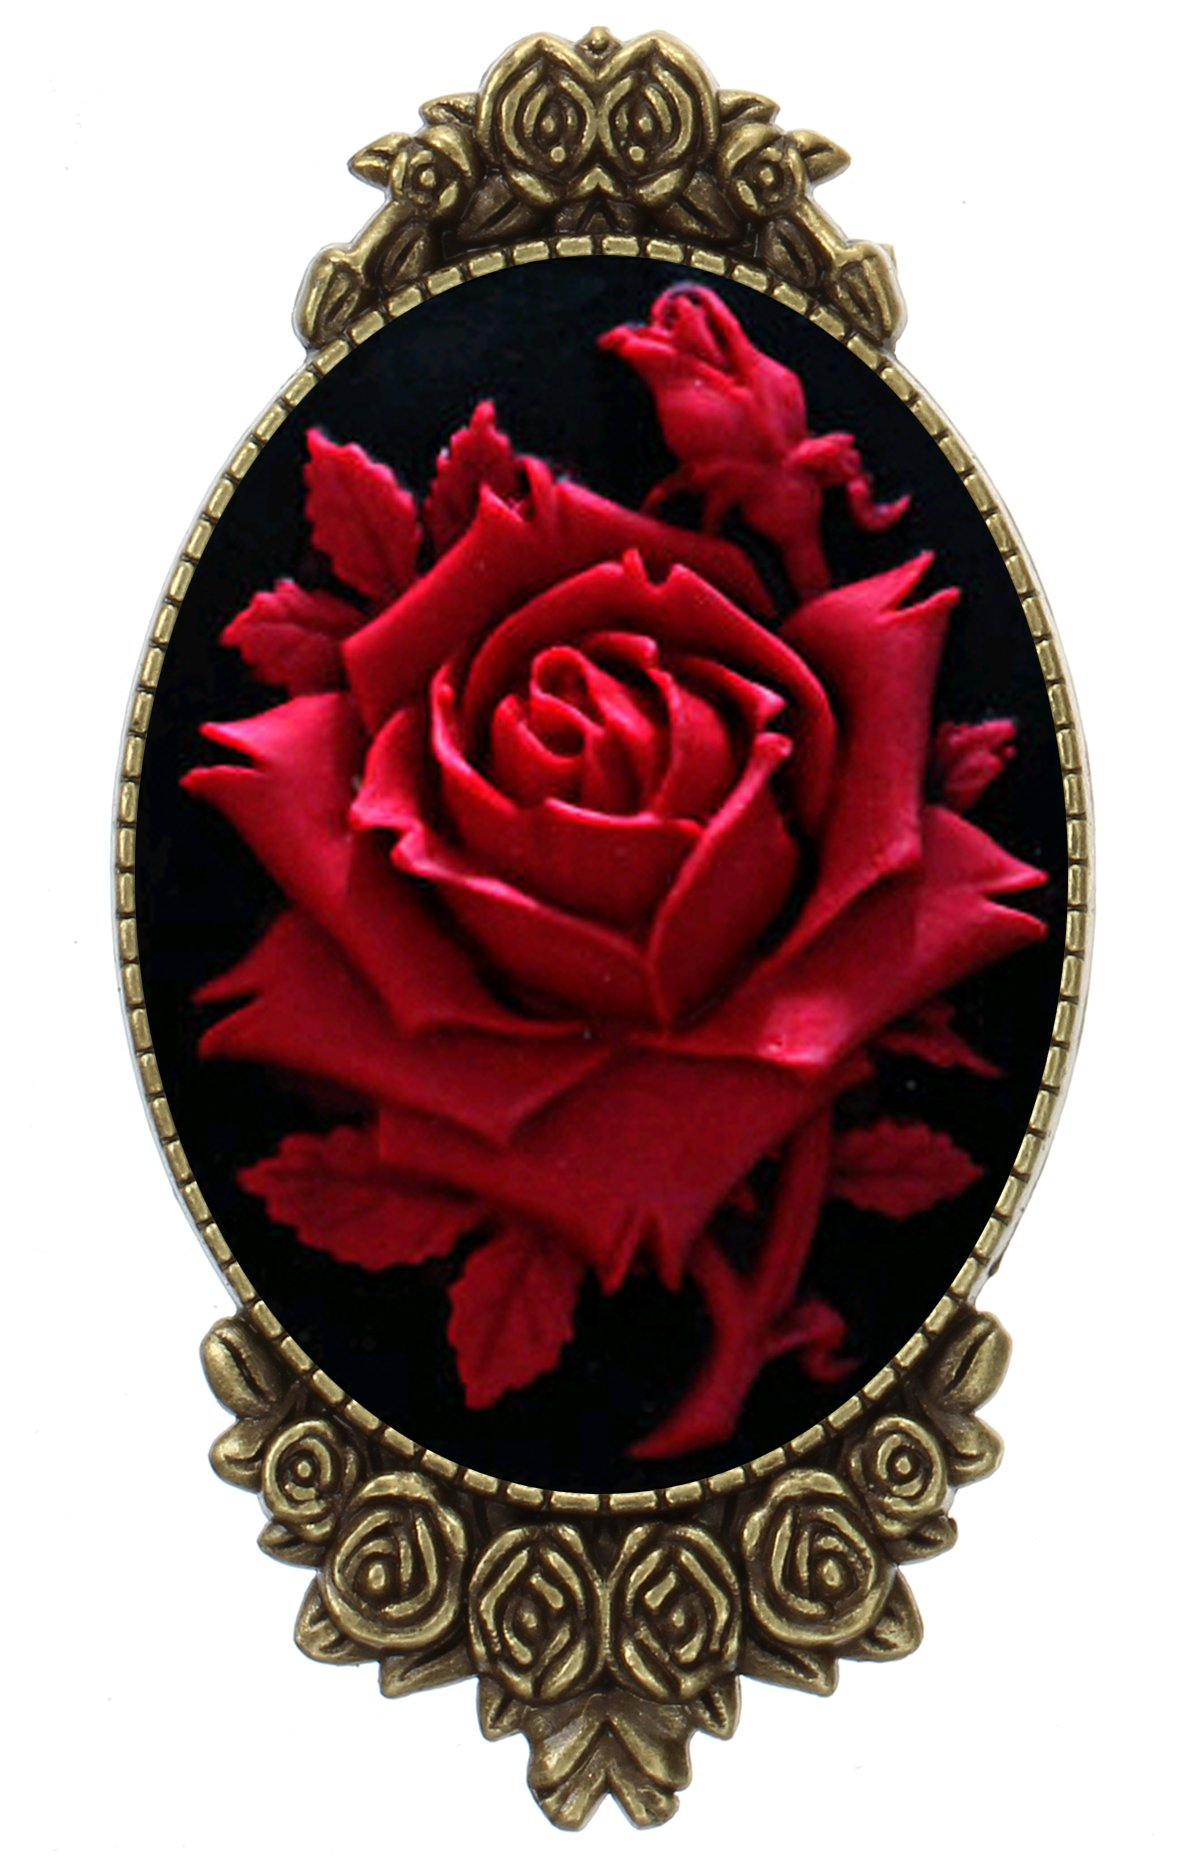 Rose Flower Brooch Pin Rose Decor Antique Brass Cameo Fashion Jewelry Pouch for Gift